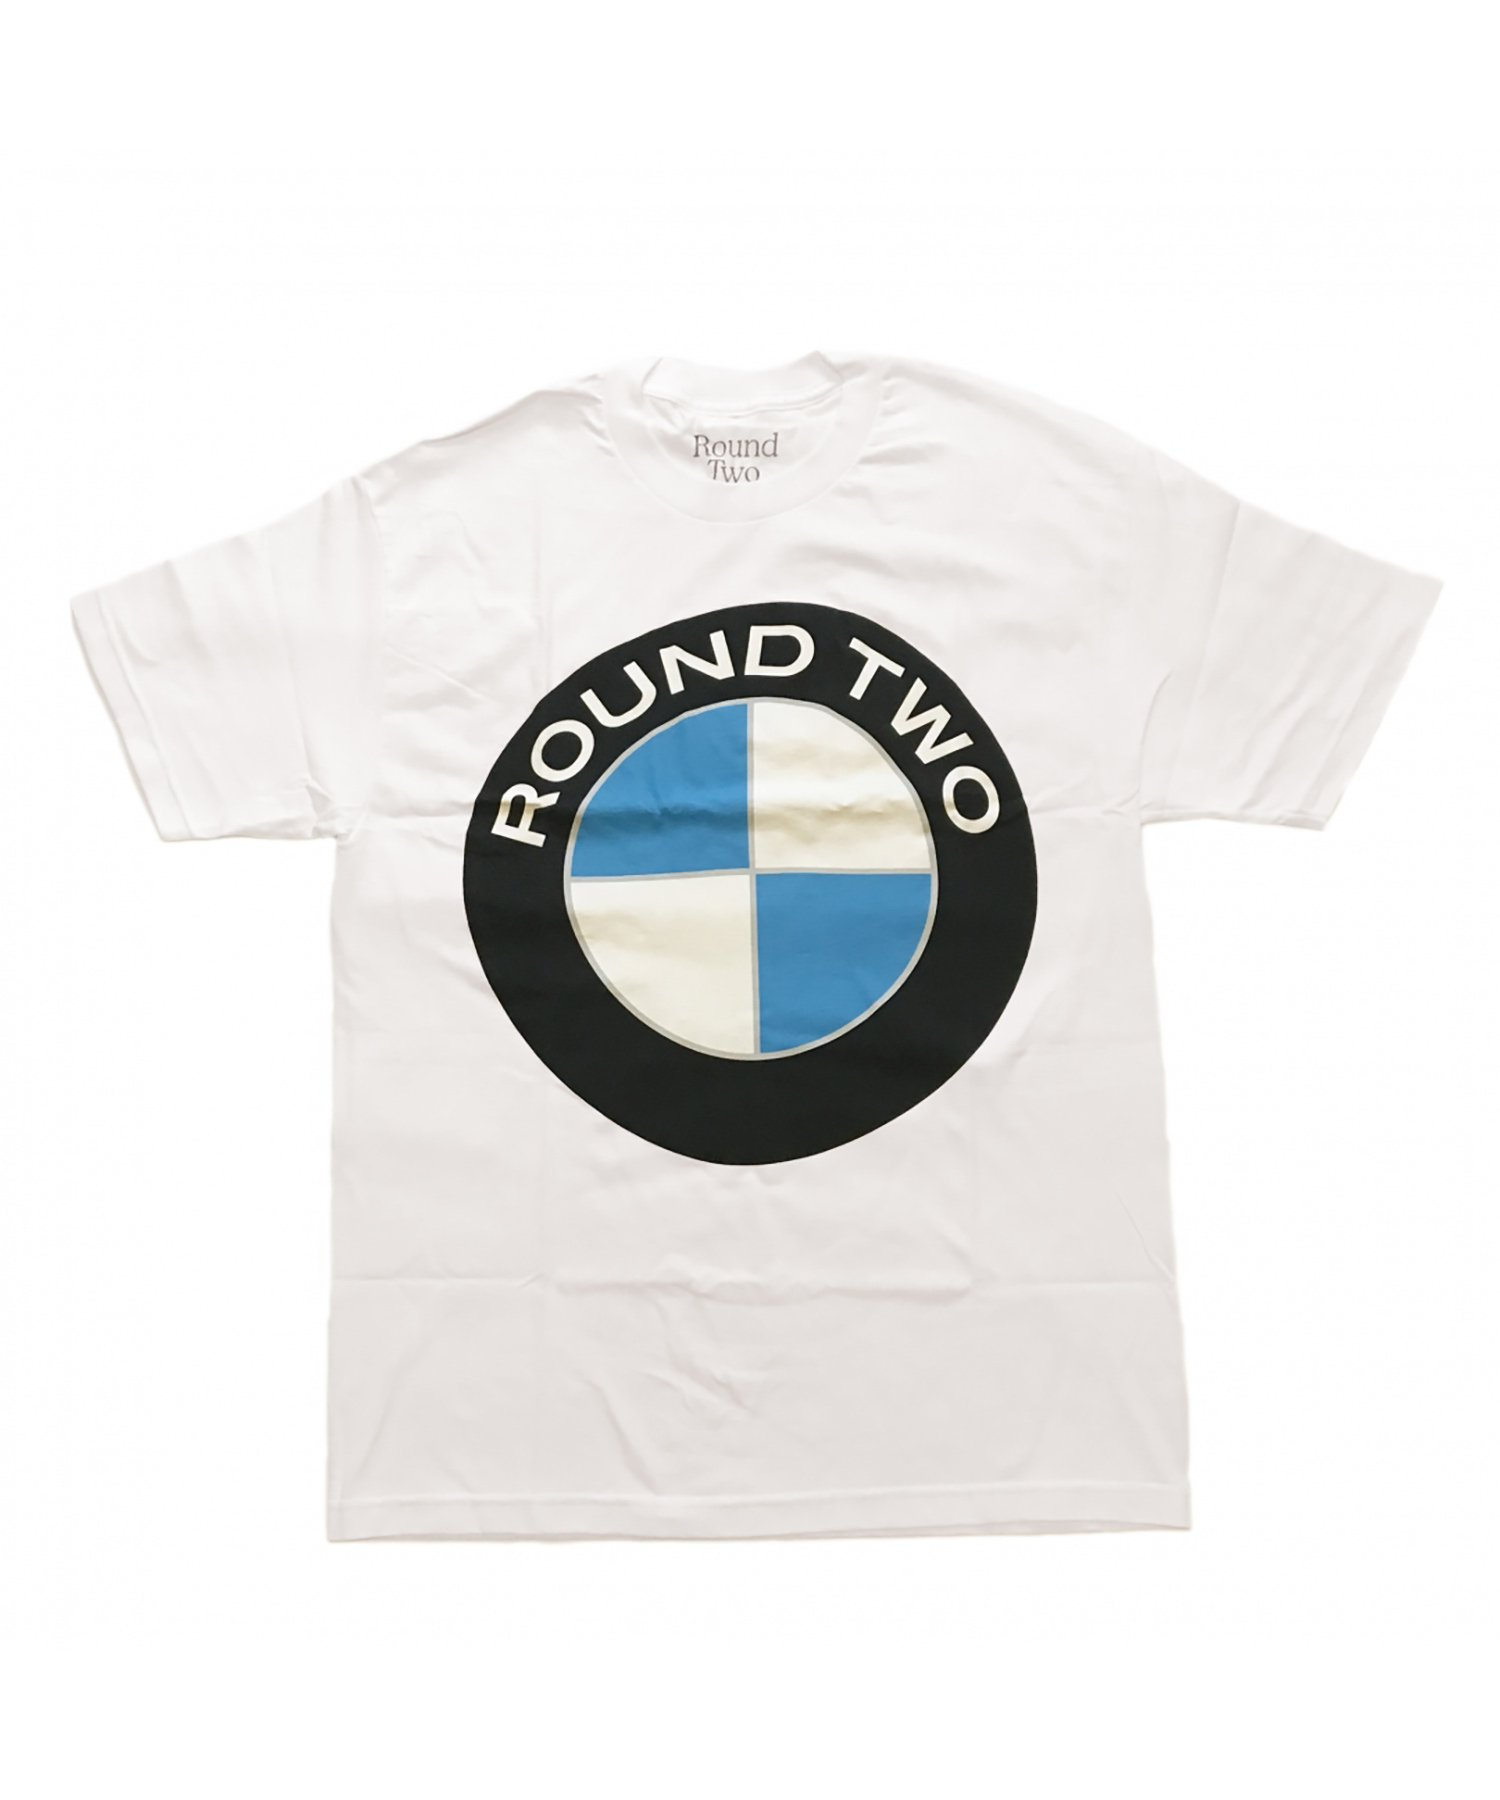 Round Two EMBLEM TEE